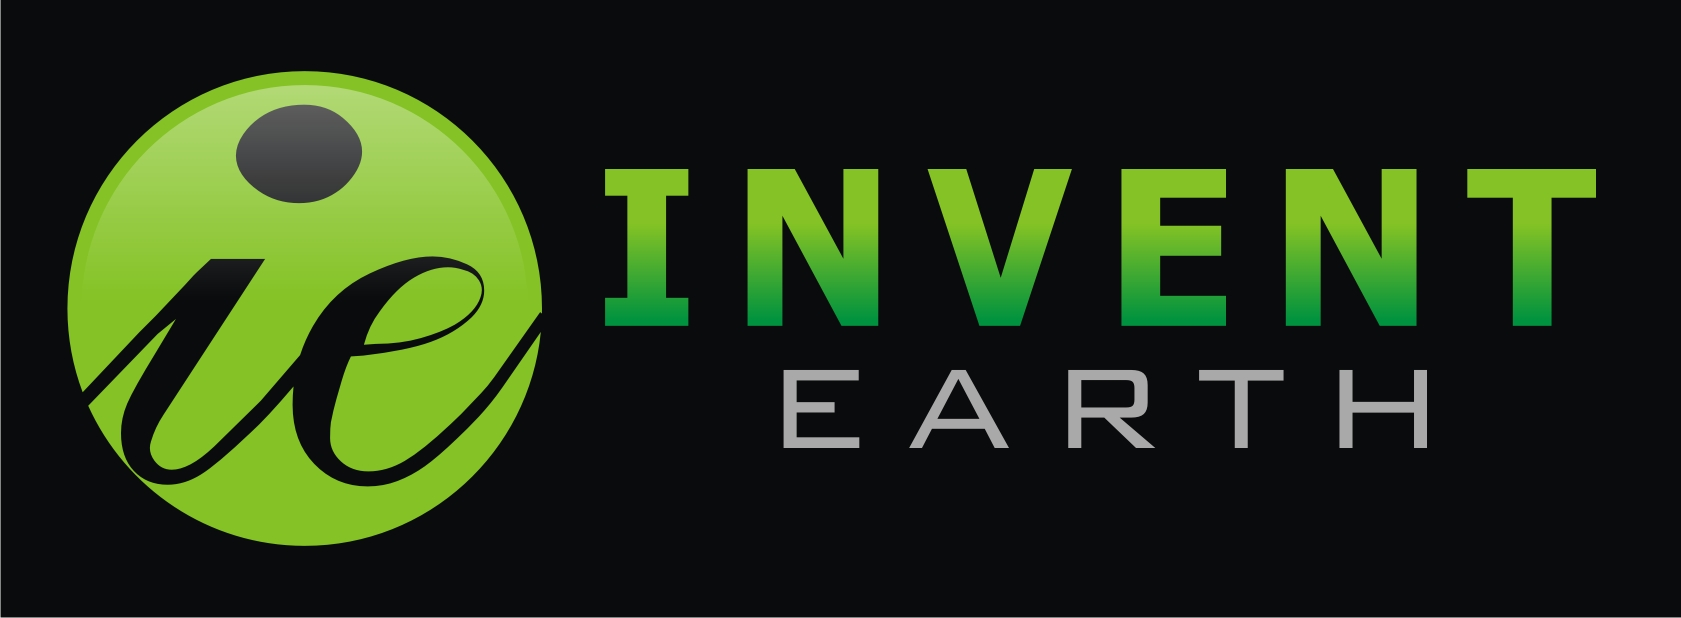 Logo Design by Angger Noviadi - Entry No. 47 in the Logo Design Contest Artistic Logo Design for Invent Earth.